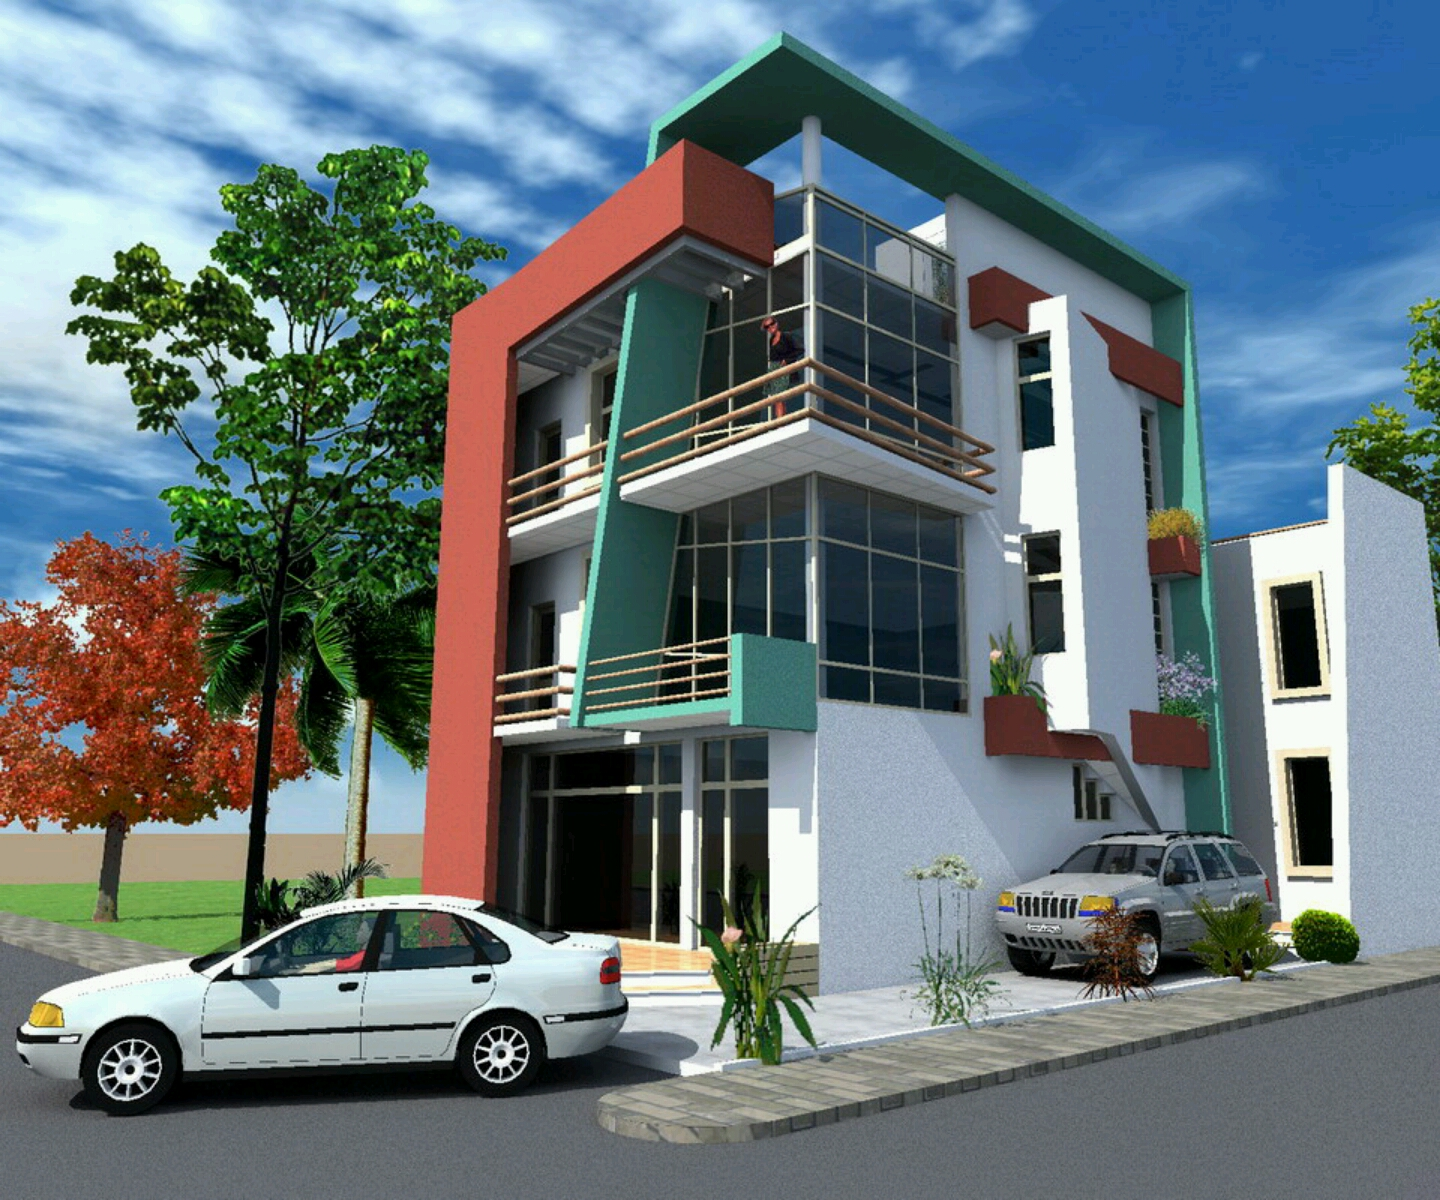 New home designs latest modern bungalows exterior for Exterior design photos